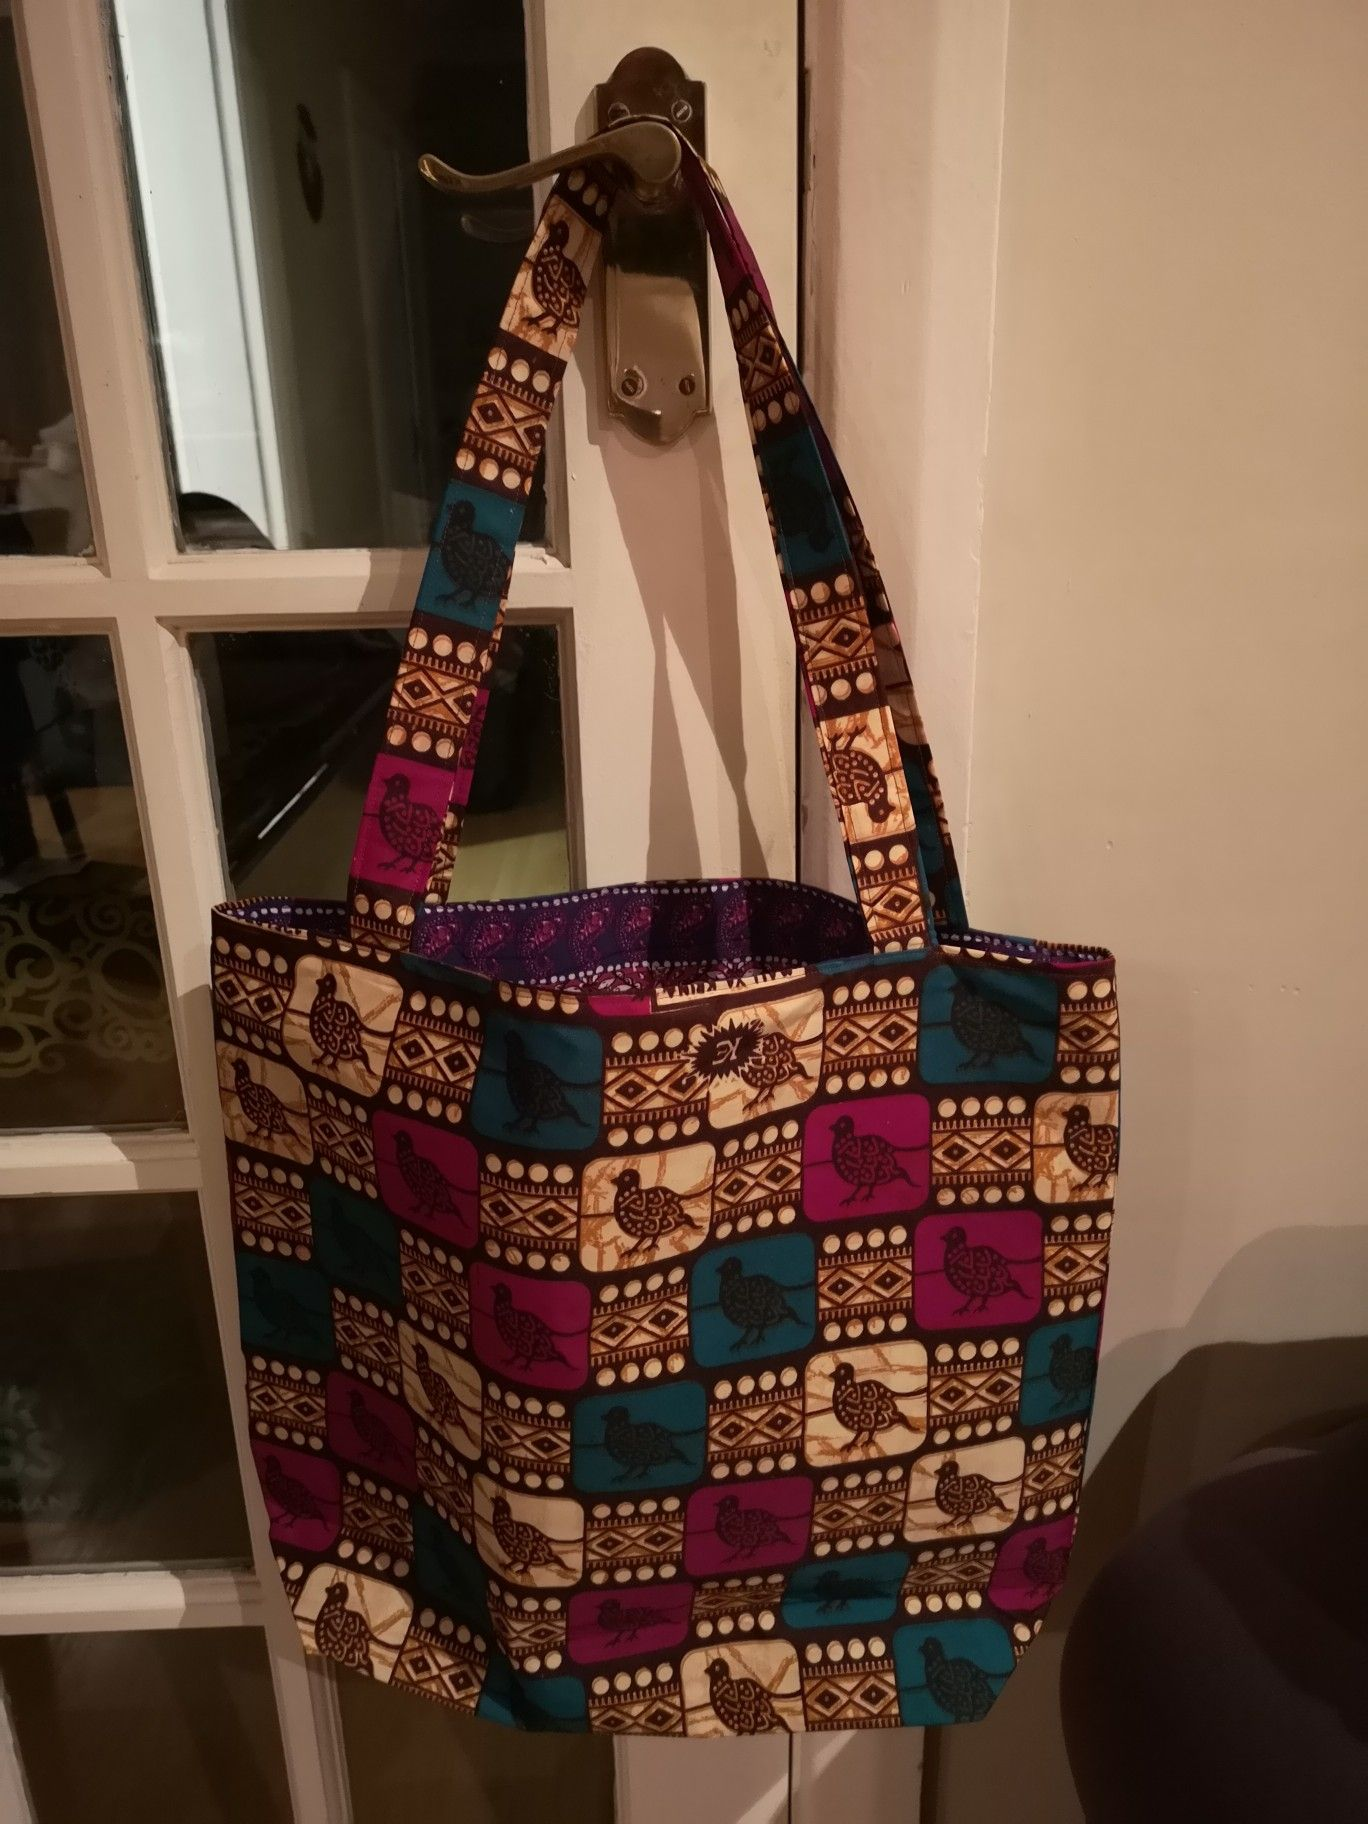 Simple lined tote bag, finally using my African print